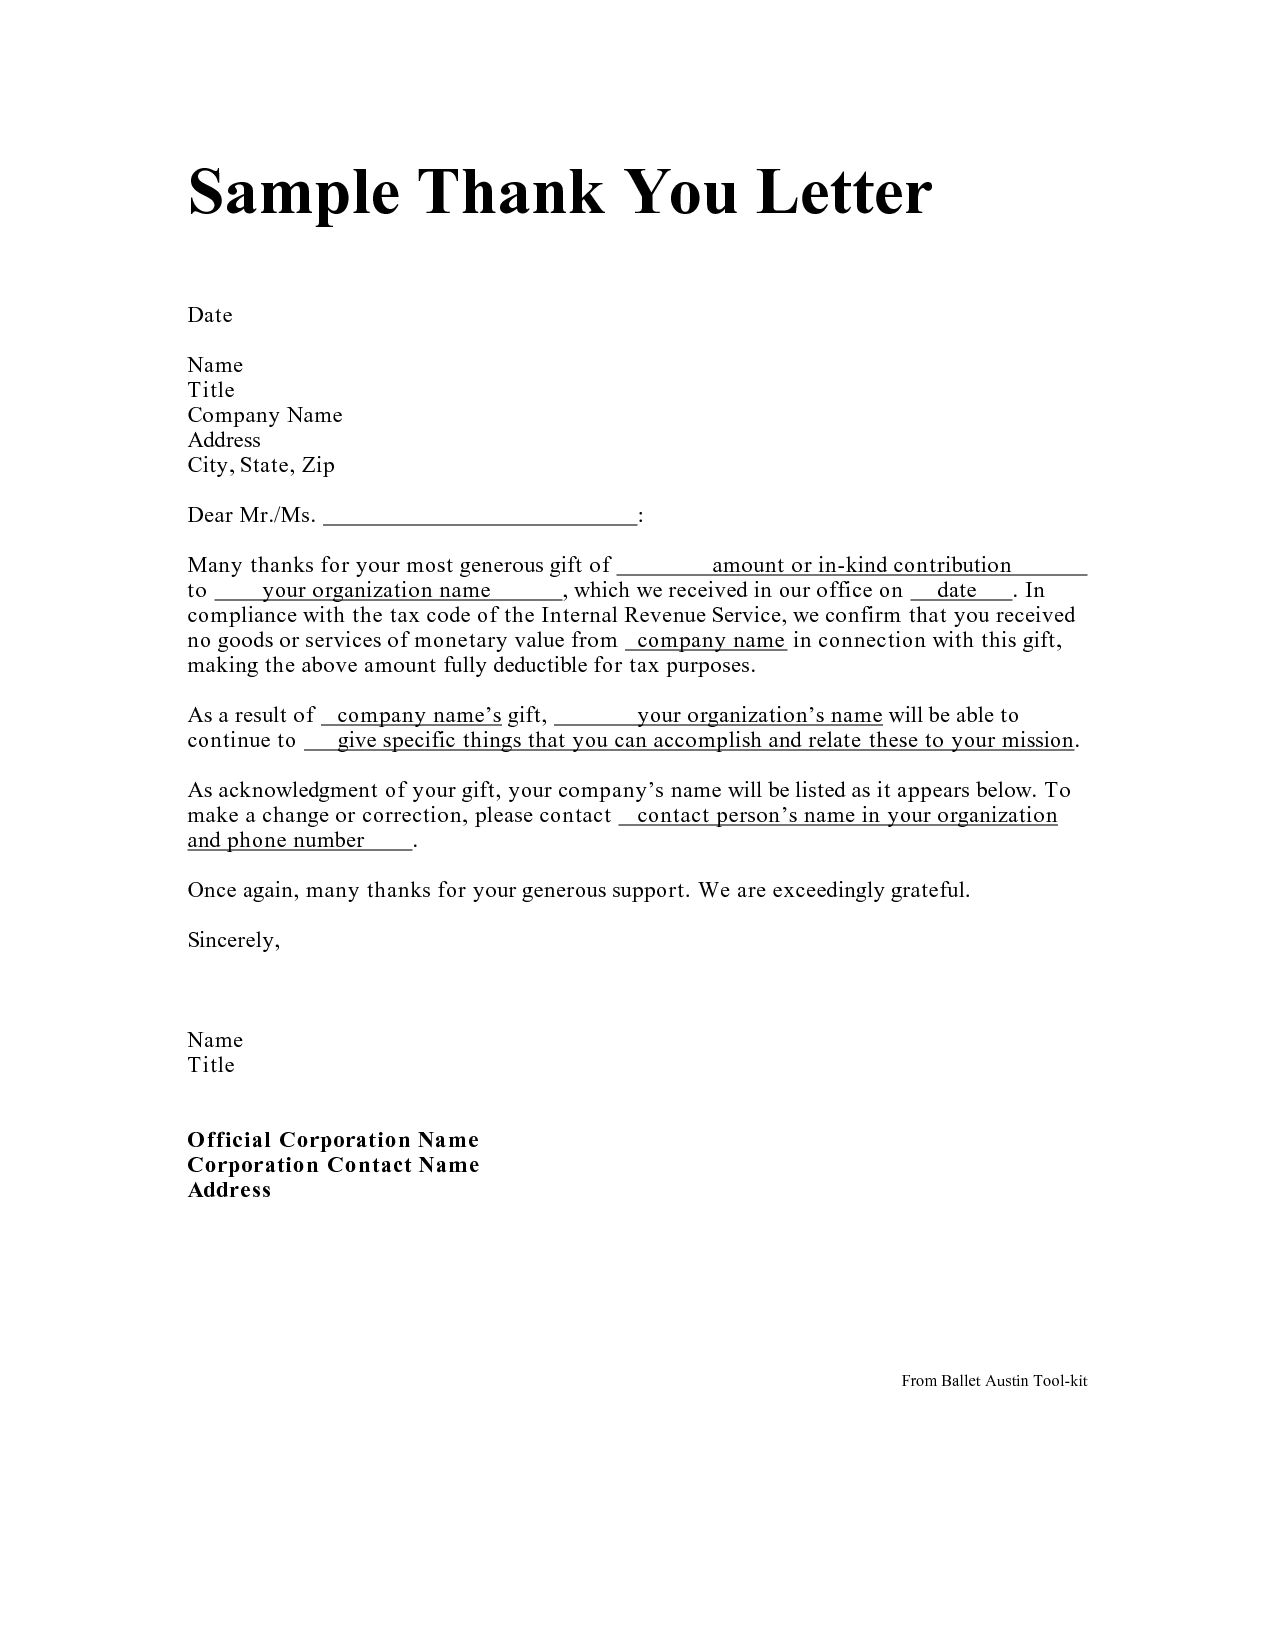 Personal thank you letter personal thank you letter samples personal thank you letter personal thank you letter samples writing thank you notes thank you note examples thecheapjerseys Choice Image